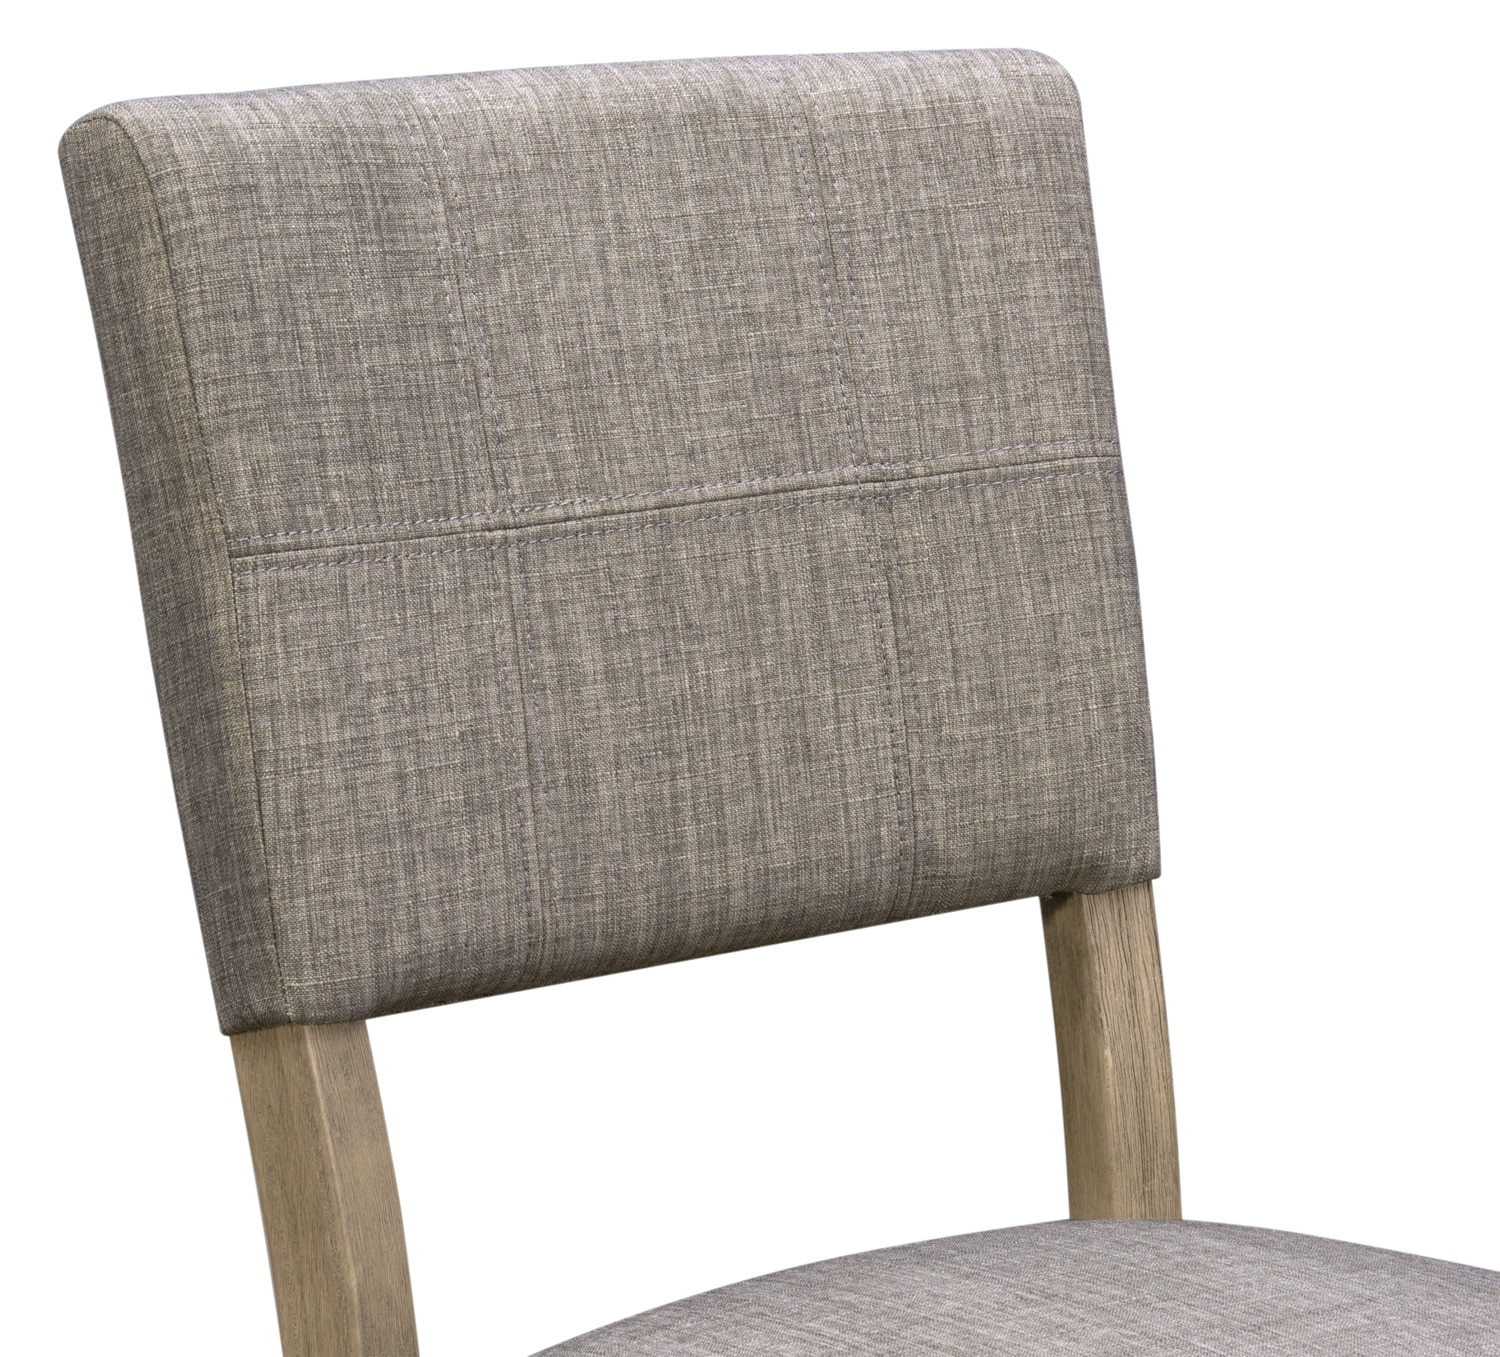 counter height chair slipcovers christmas covers dunnes stores tribeca table and 6 upholstered side chairs